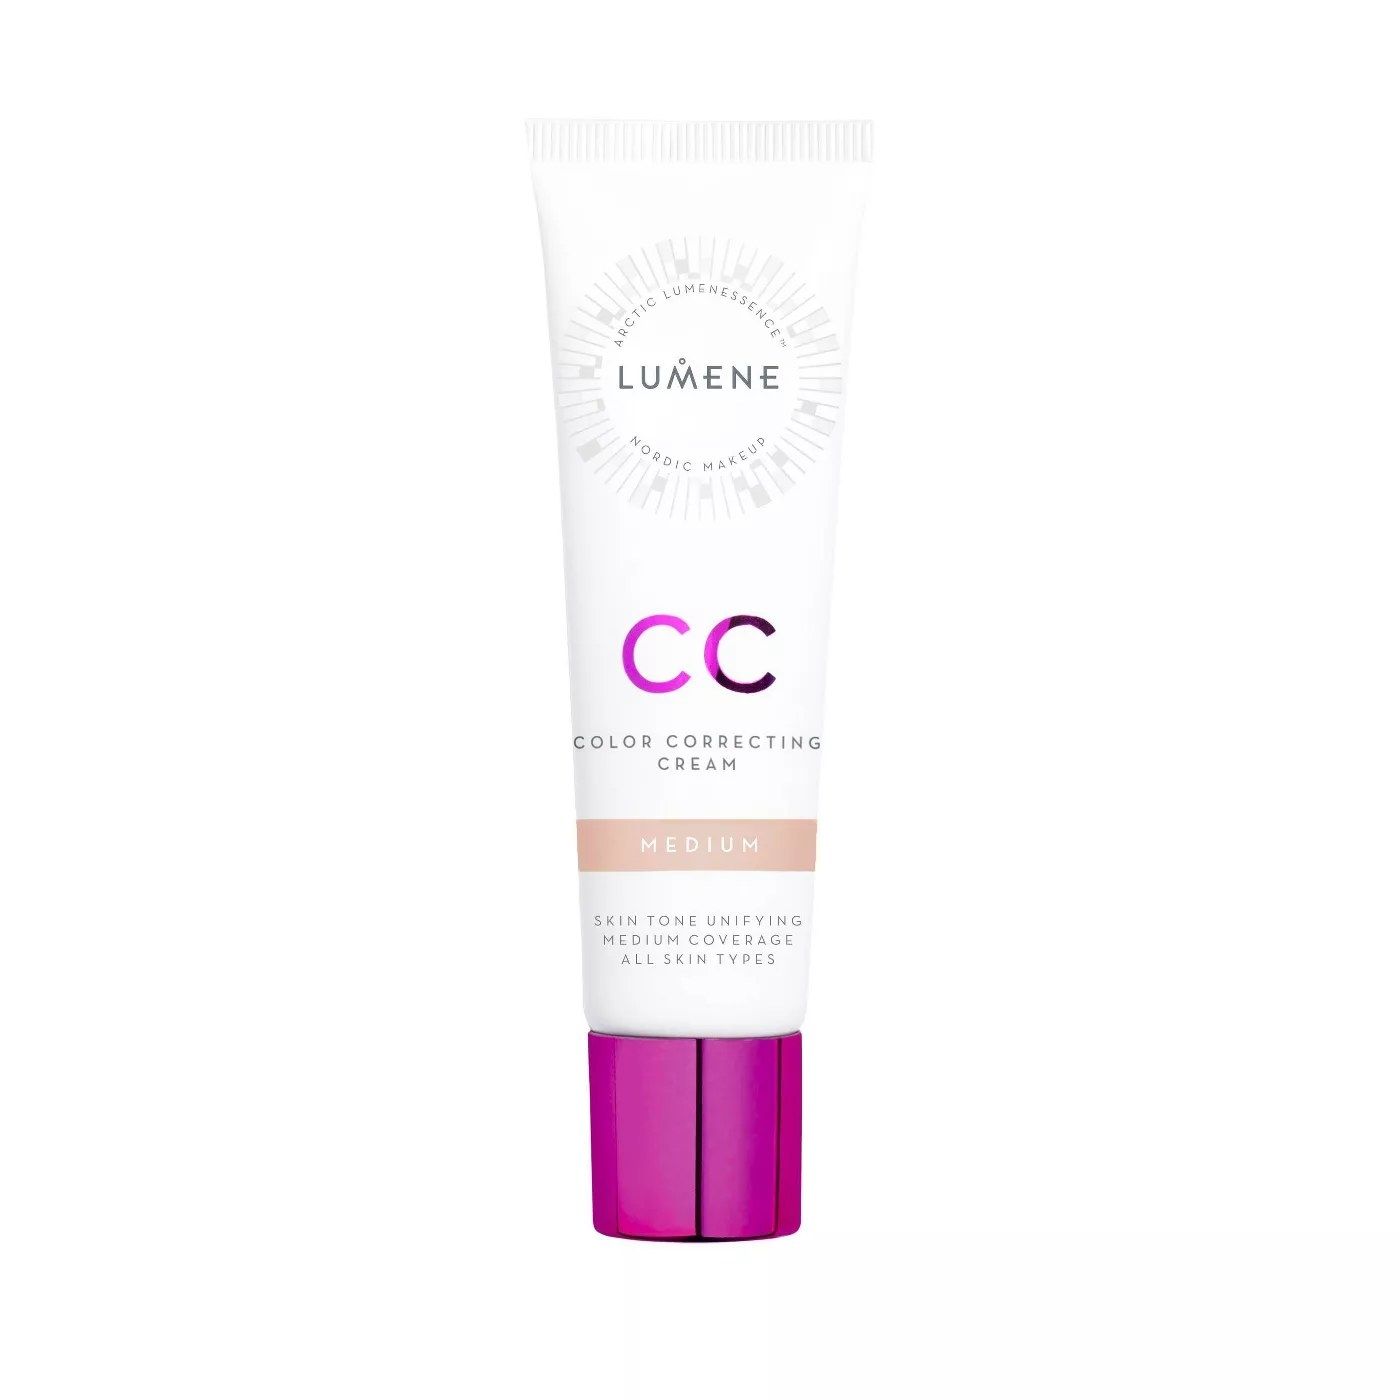 The color-correcting cream in the medium shade